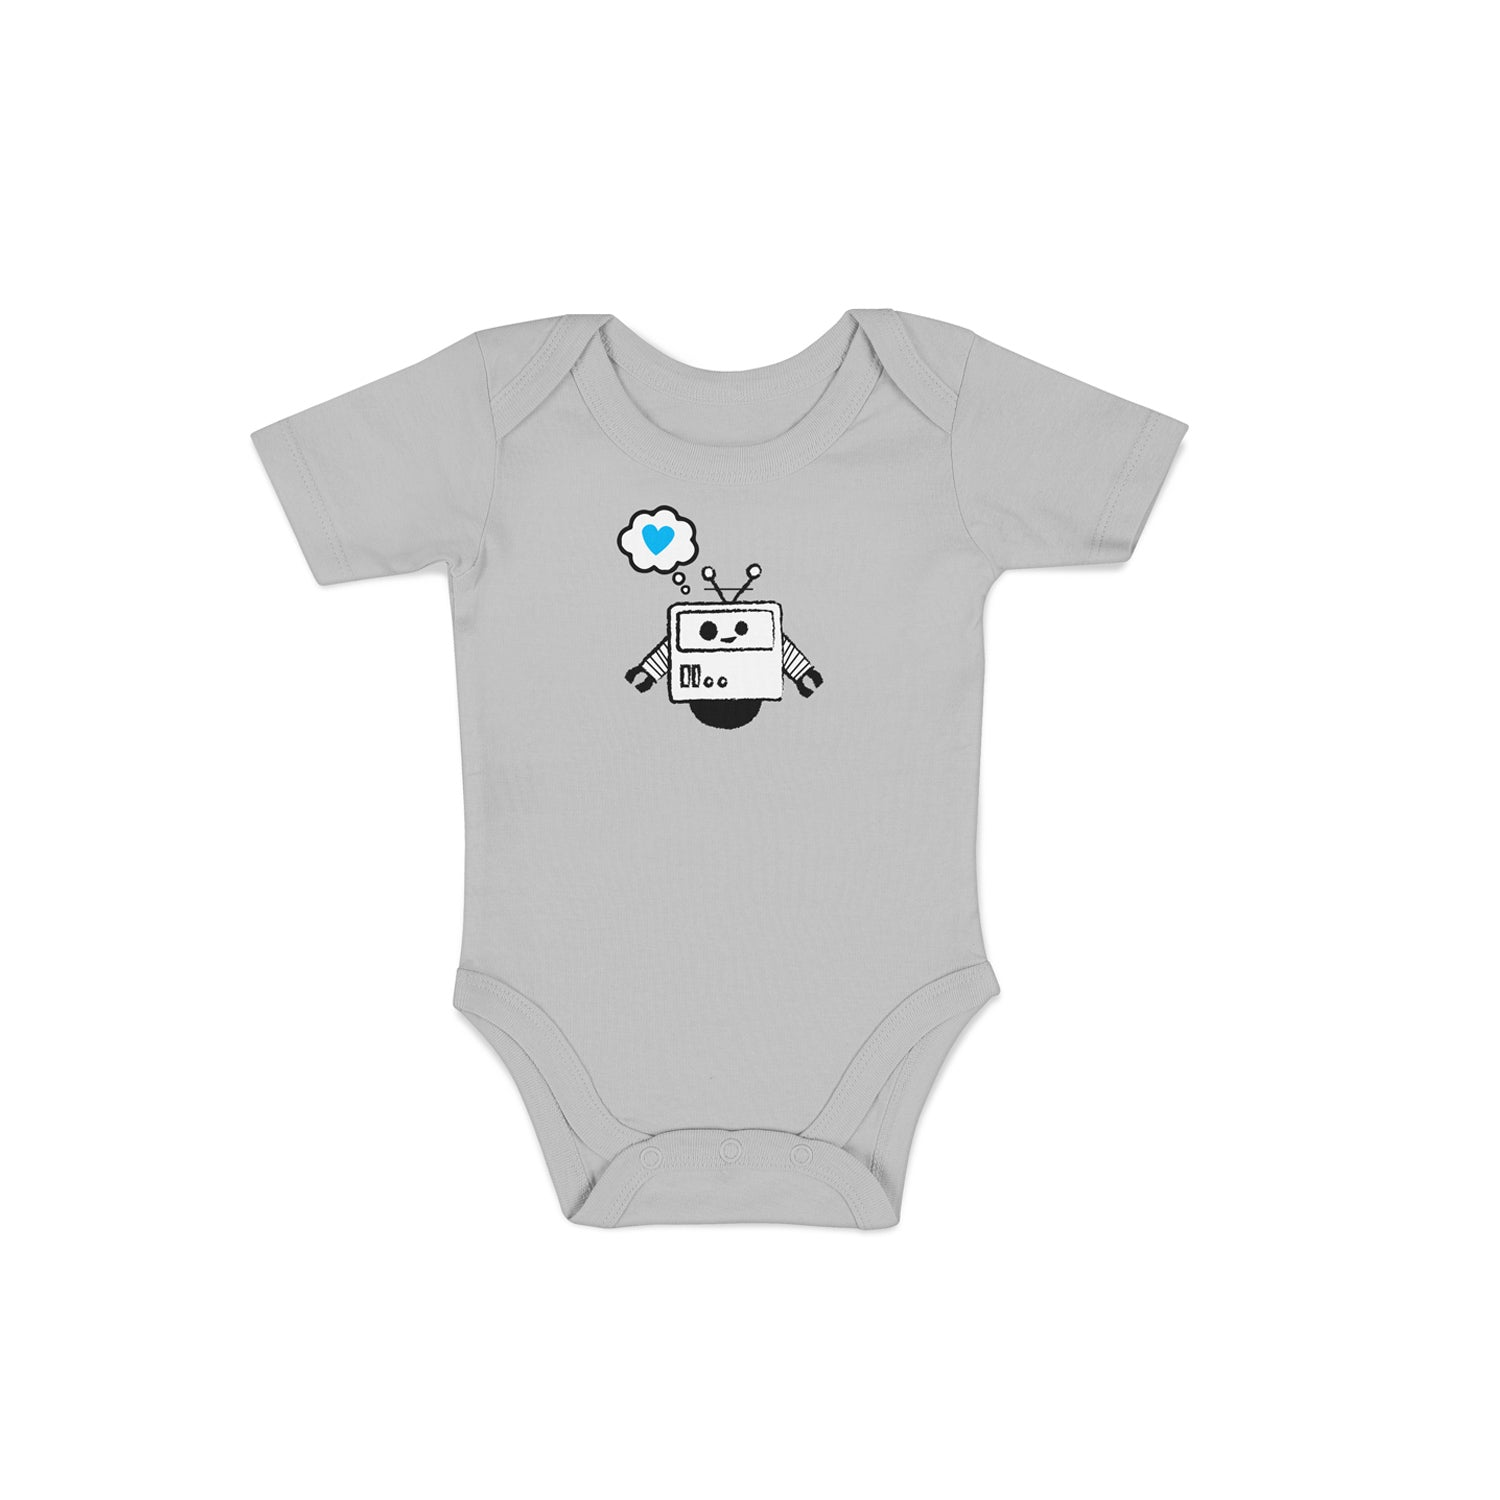 grey baby onesie with robot design on front